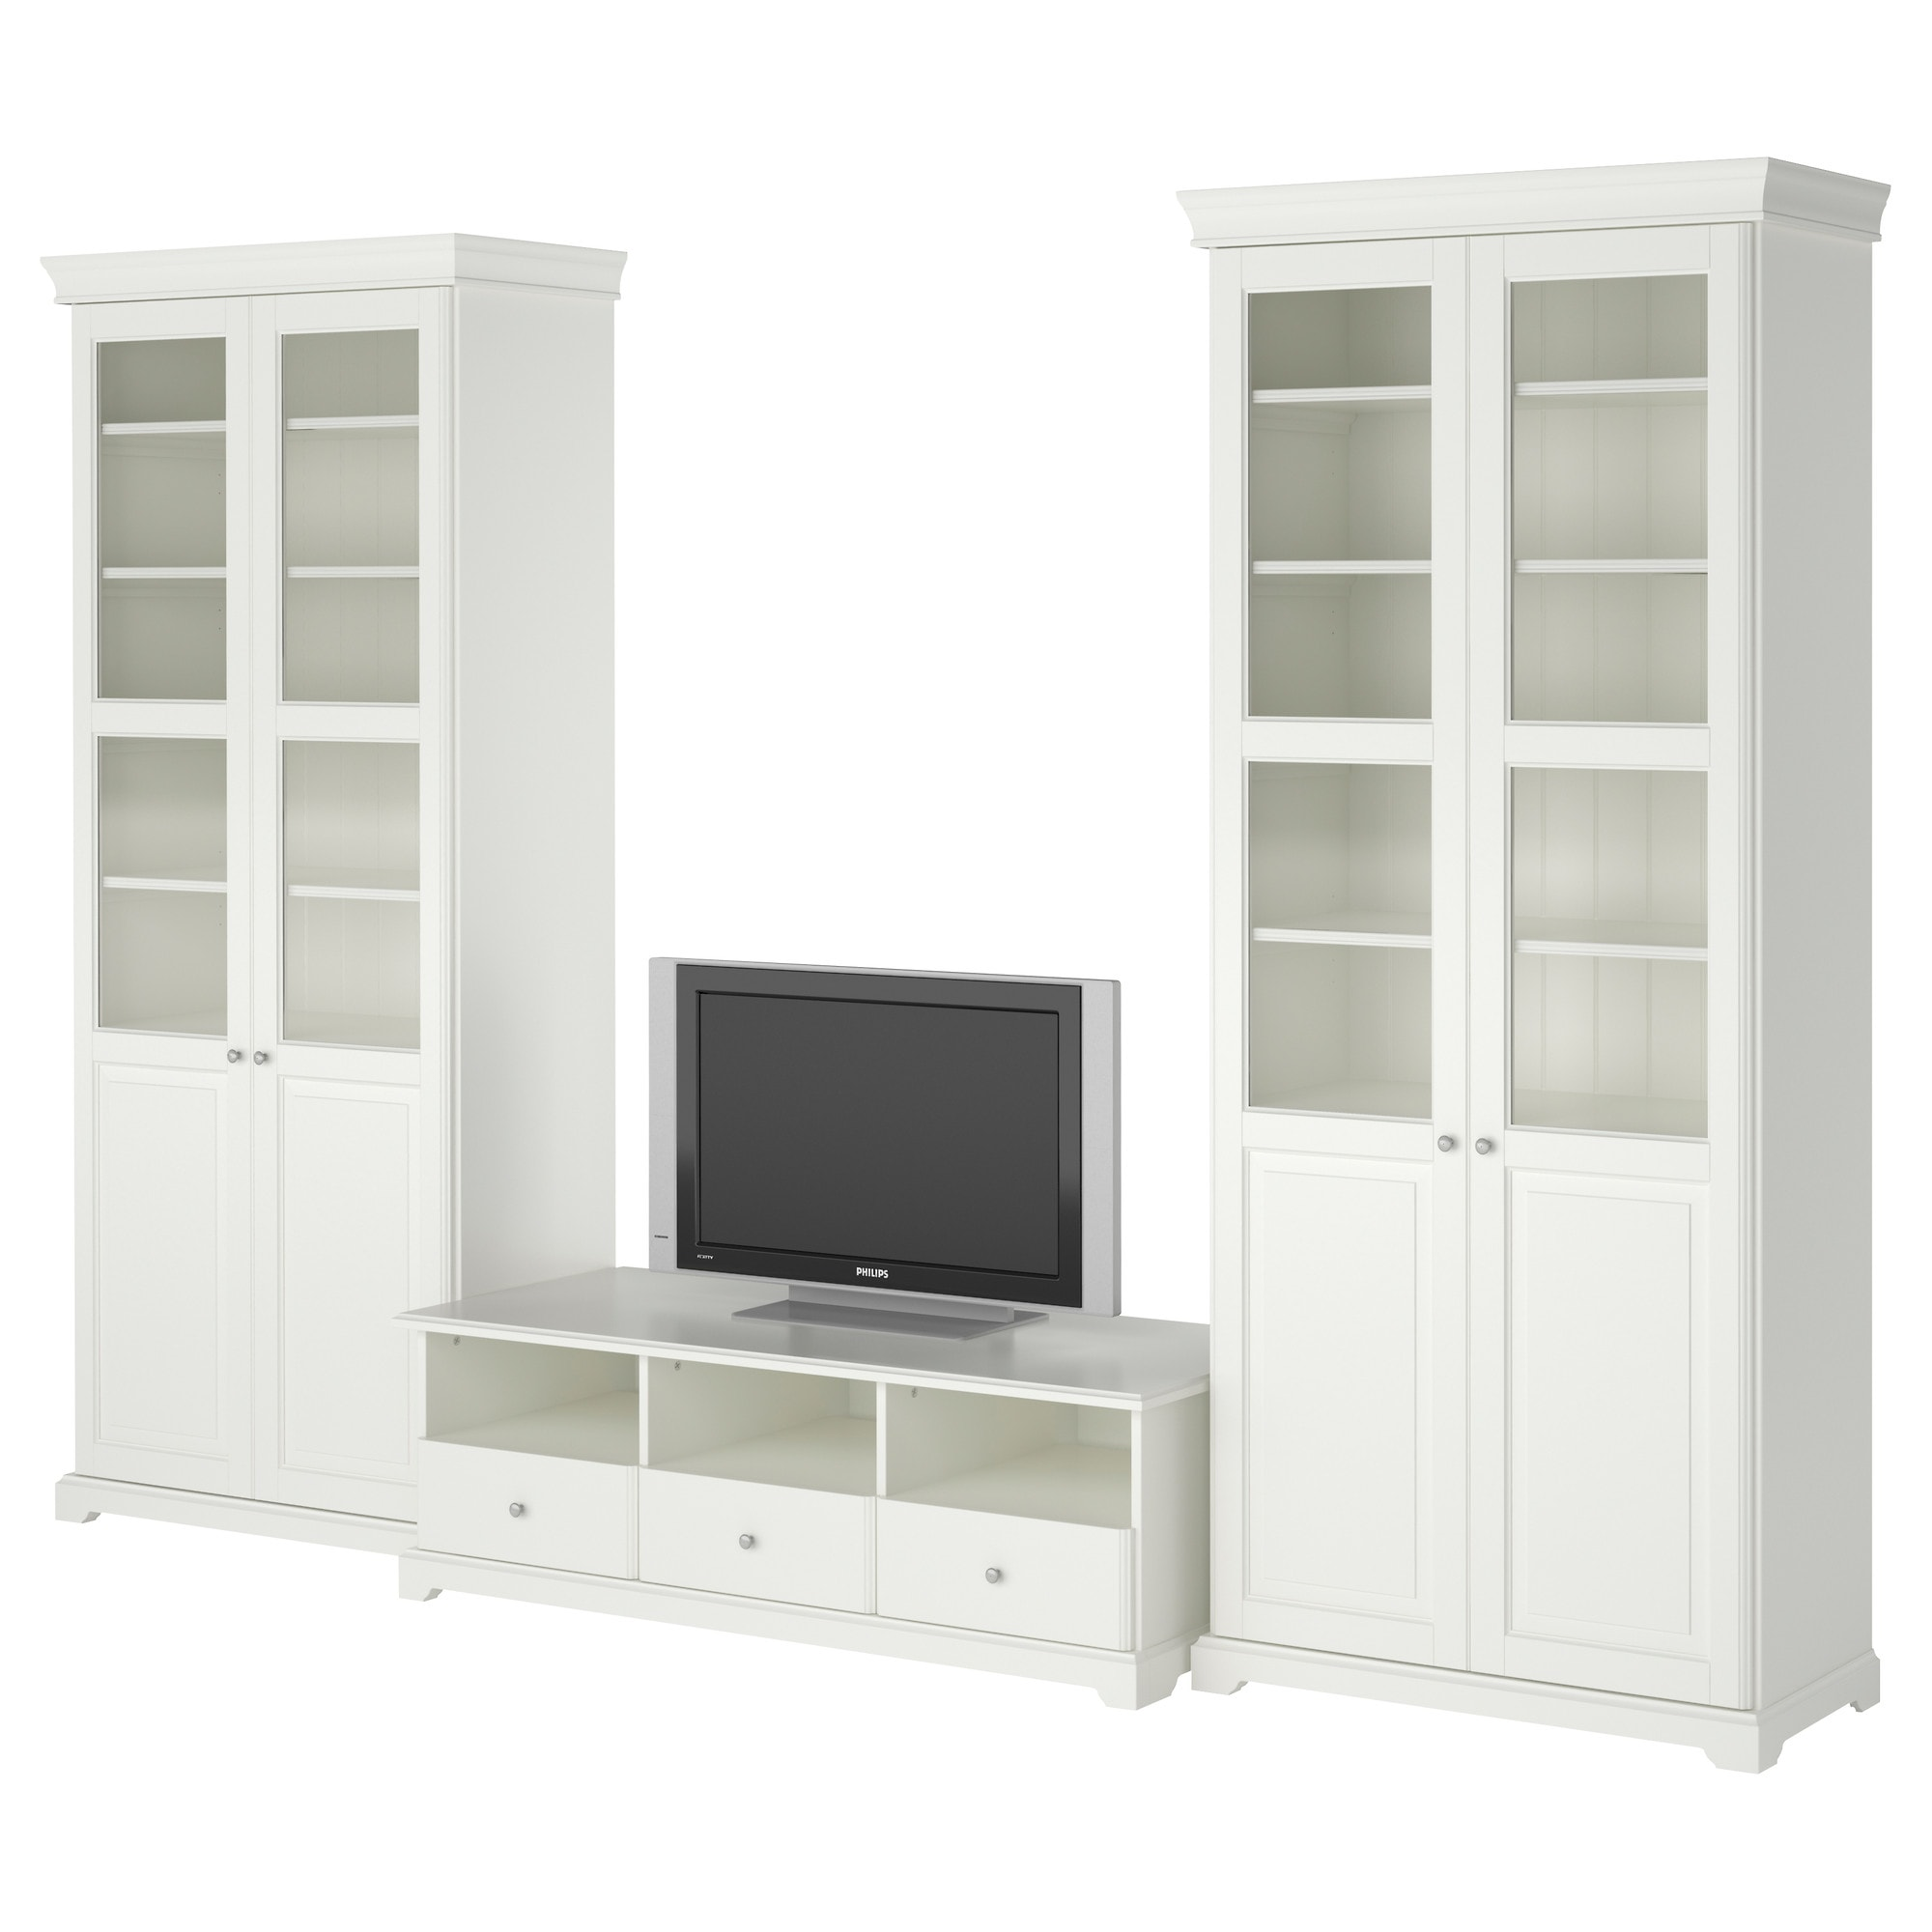 Large TV Stands Entertainment Centers IKEA - Ikea furniture